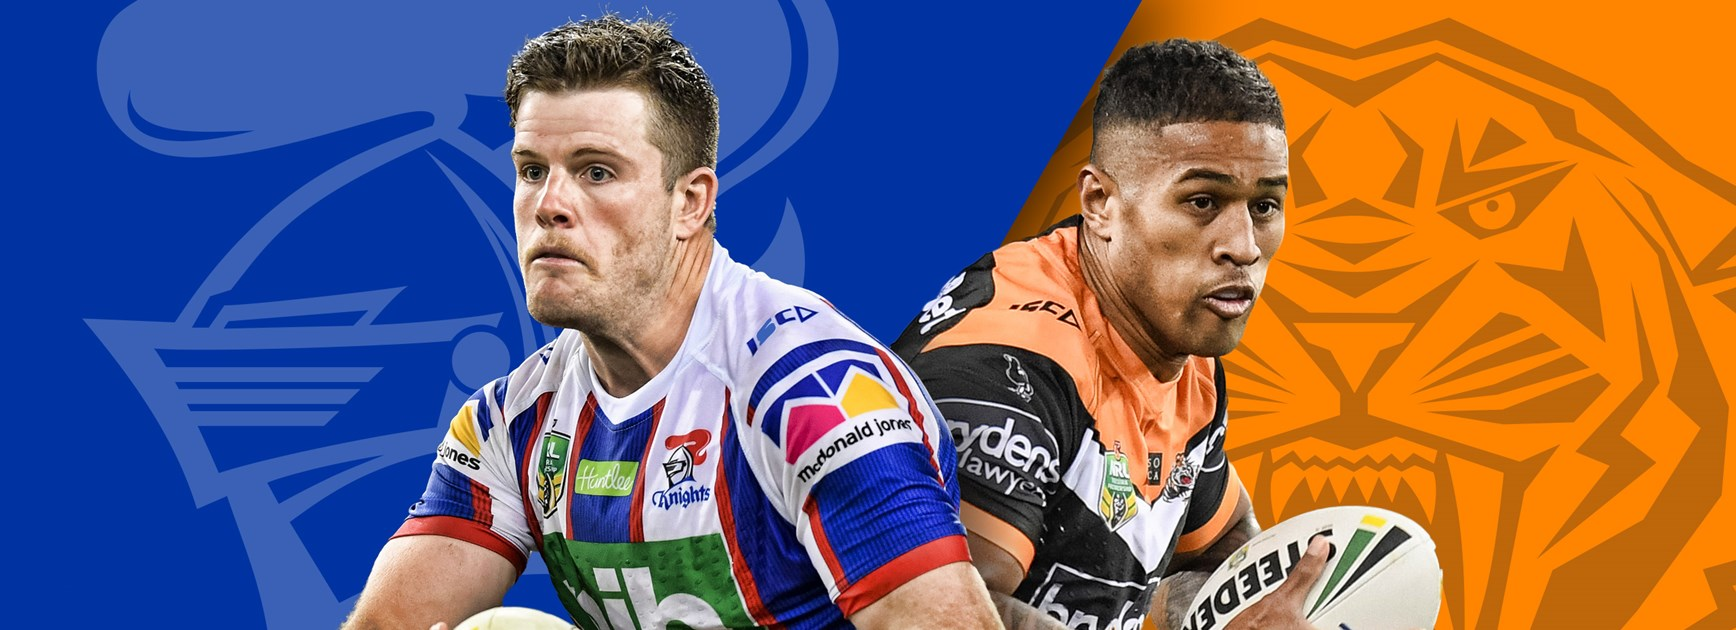 Knights v Wests Tigers: Late changes for both teams